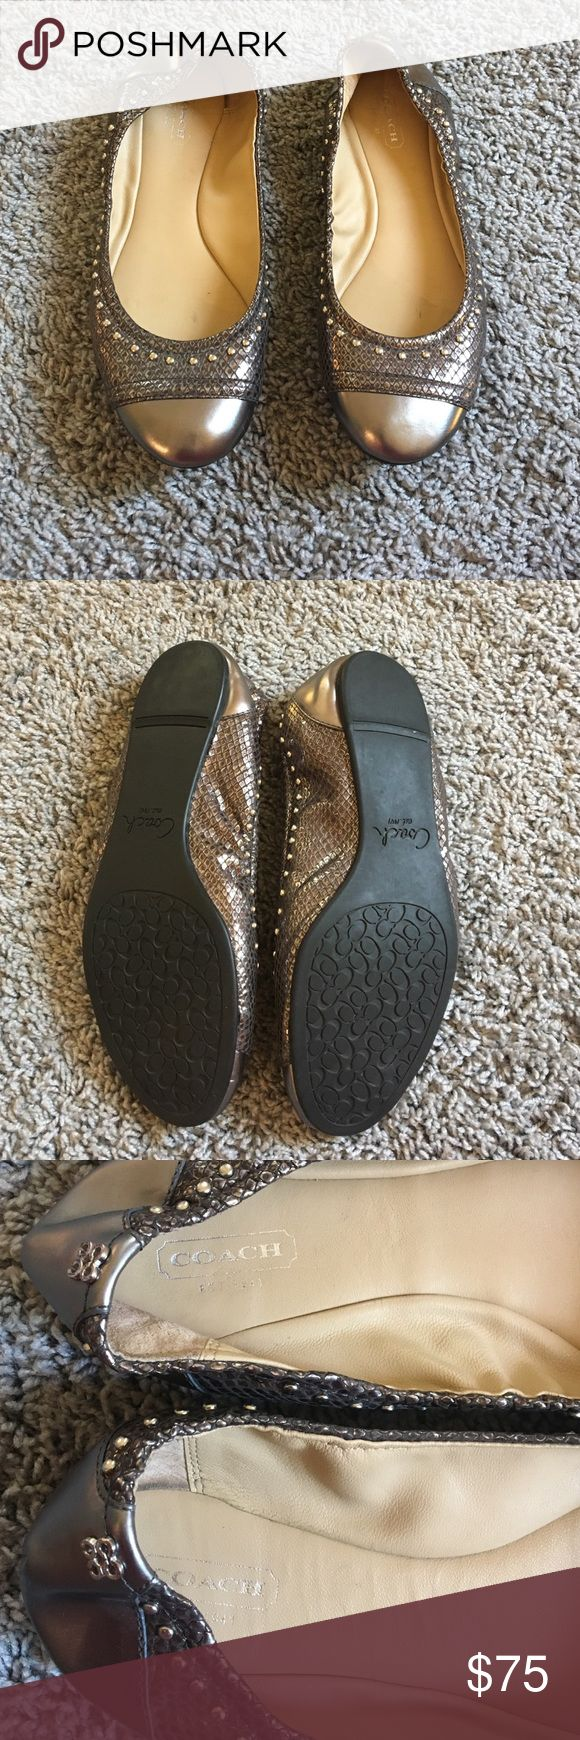 Silver Coach Flats Worn only once. Super cute to dress up or down. Practically new looking, no scratches. Bought at the coach store Coach Shoes Flats & Loafers